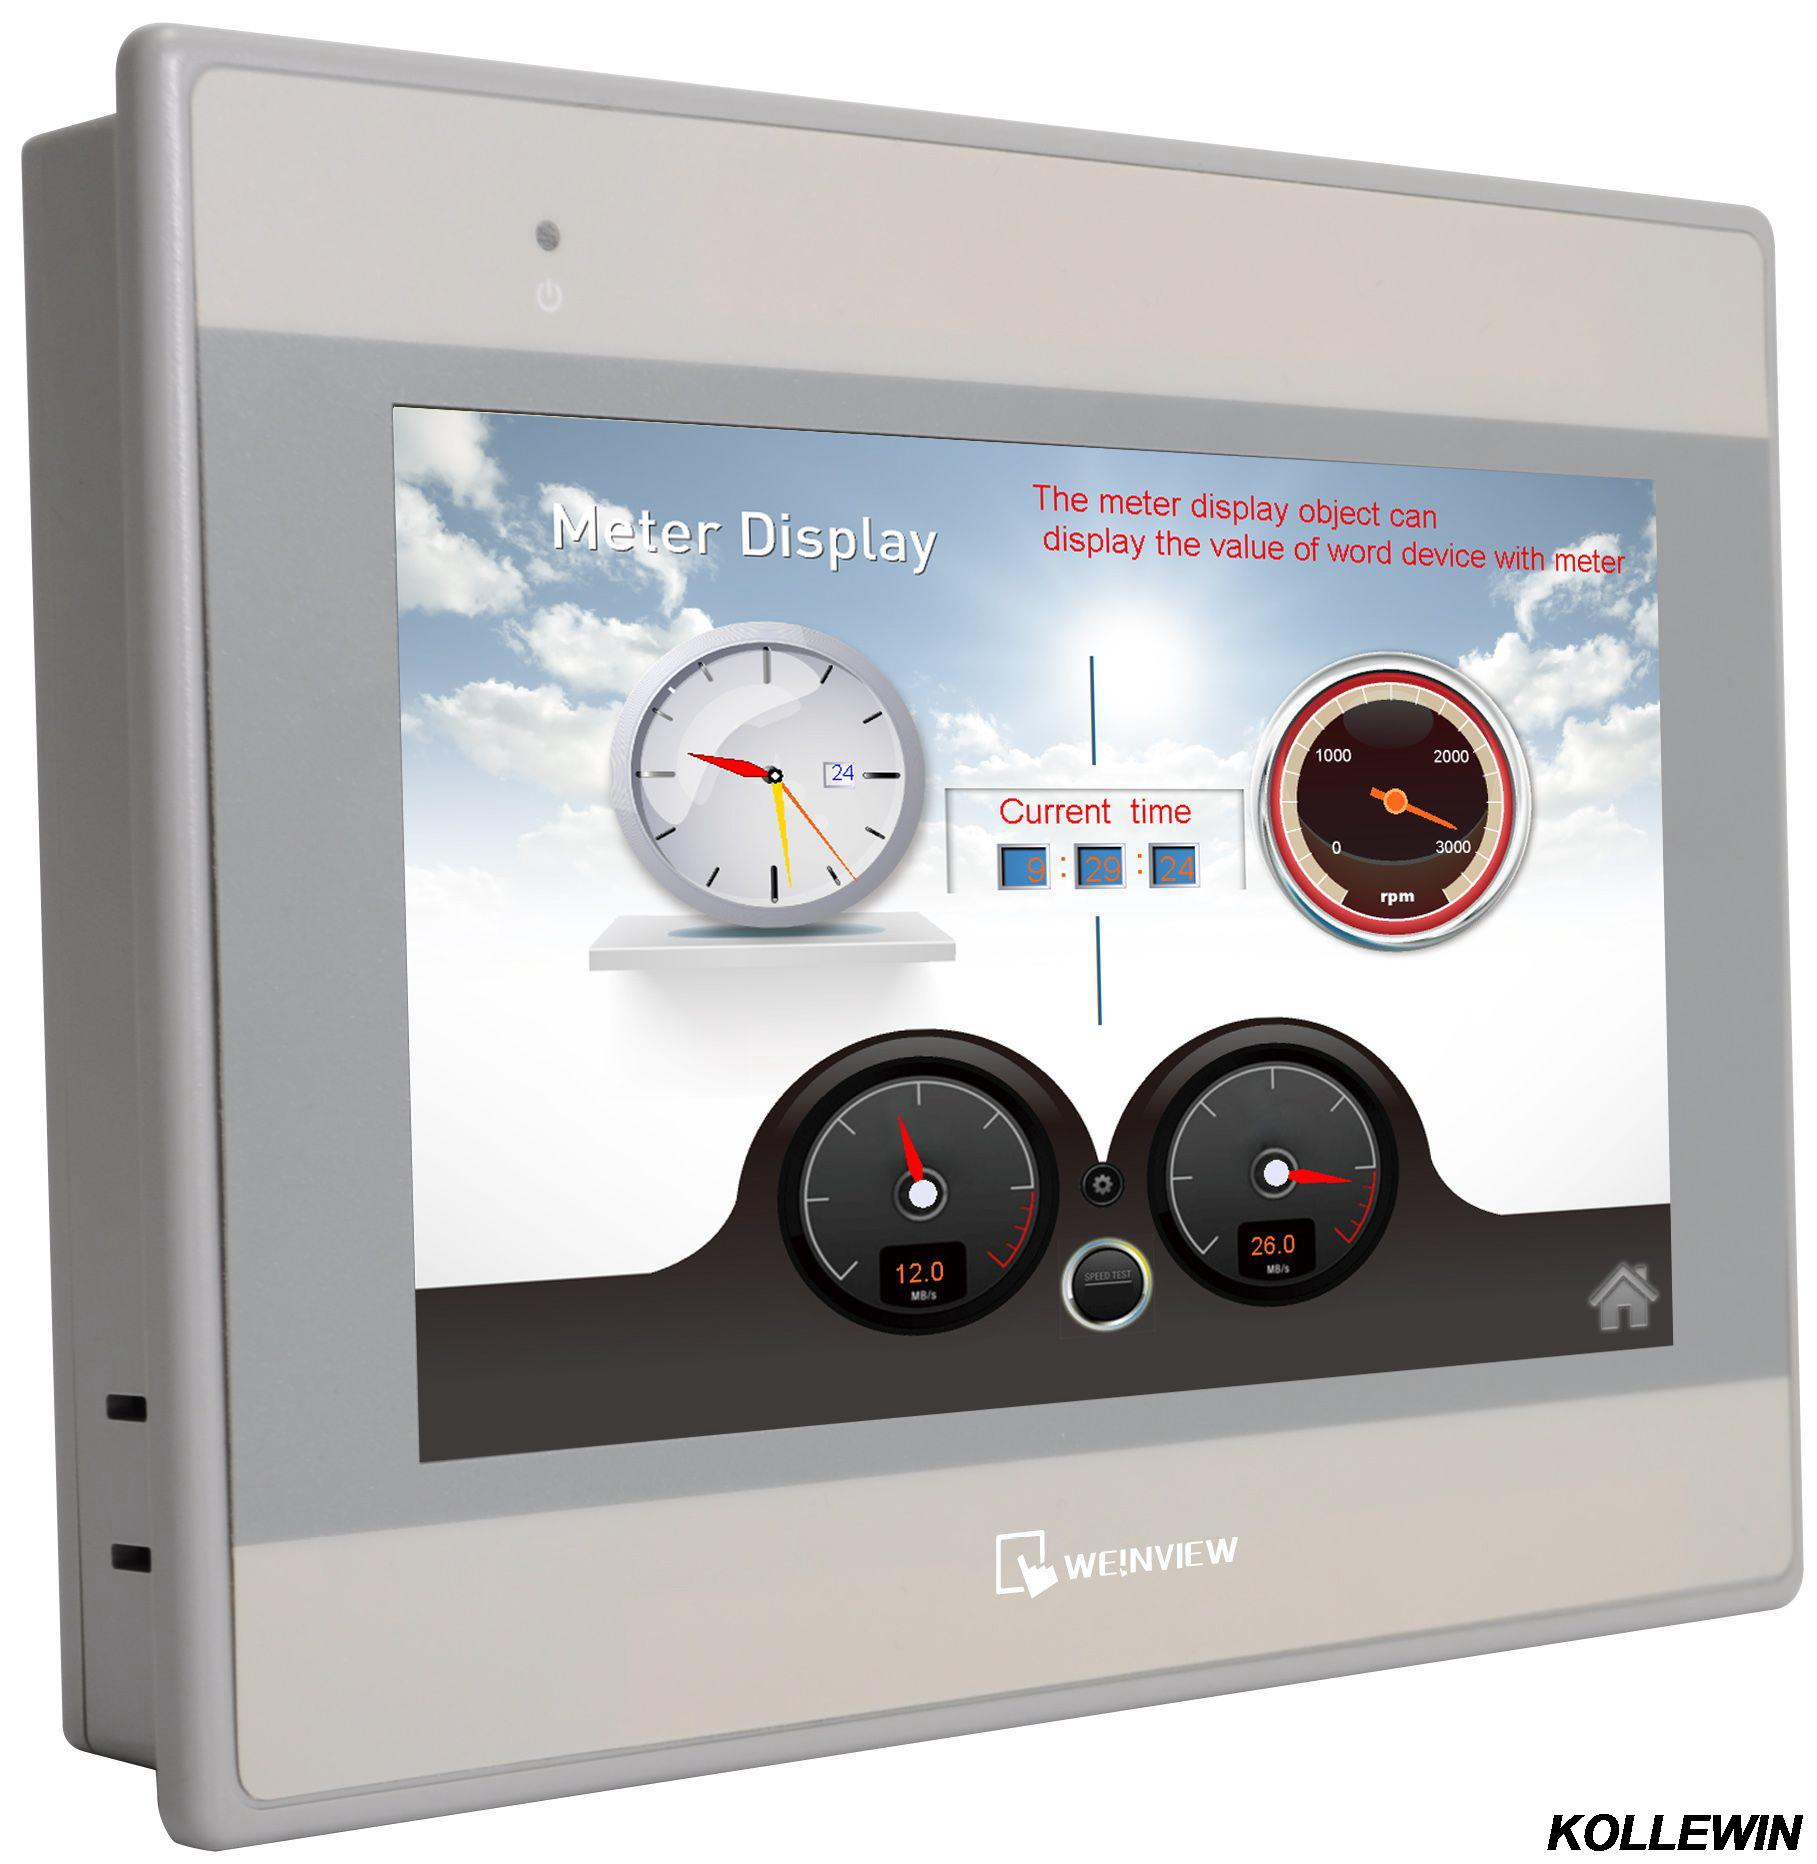 WEINVIEW Weintek MT8071iE touch panel HMI 7 TFT 800x480 32Bits 600MHZ 1 yearwarranty (COMPATIBLE WITH ALLEN BRADLEY PLC'S) 32 pcs package tk6070iq weinview hmi 7 tft 800 480 usb host 1 year warranty wholesale price